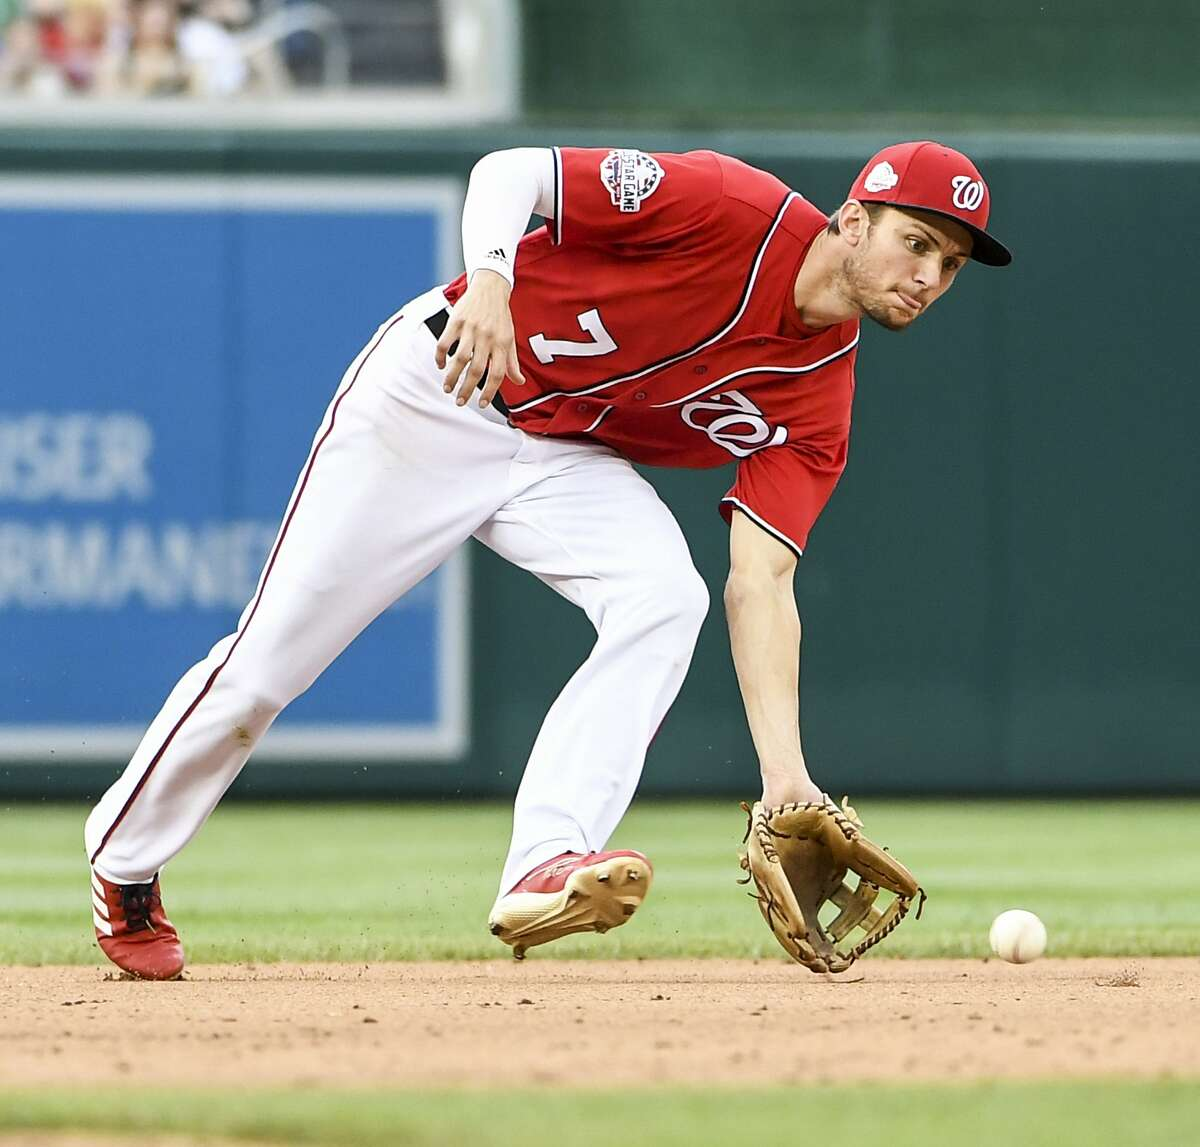 Racially insensitive and homophobic tweets from 2011 and 2012 attributed to Nationals shortstop Trea Turner surfaced Sunday evening. MUST CREDIT: Washington Post photo by Jonathan Newton